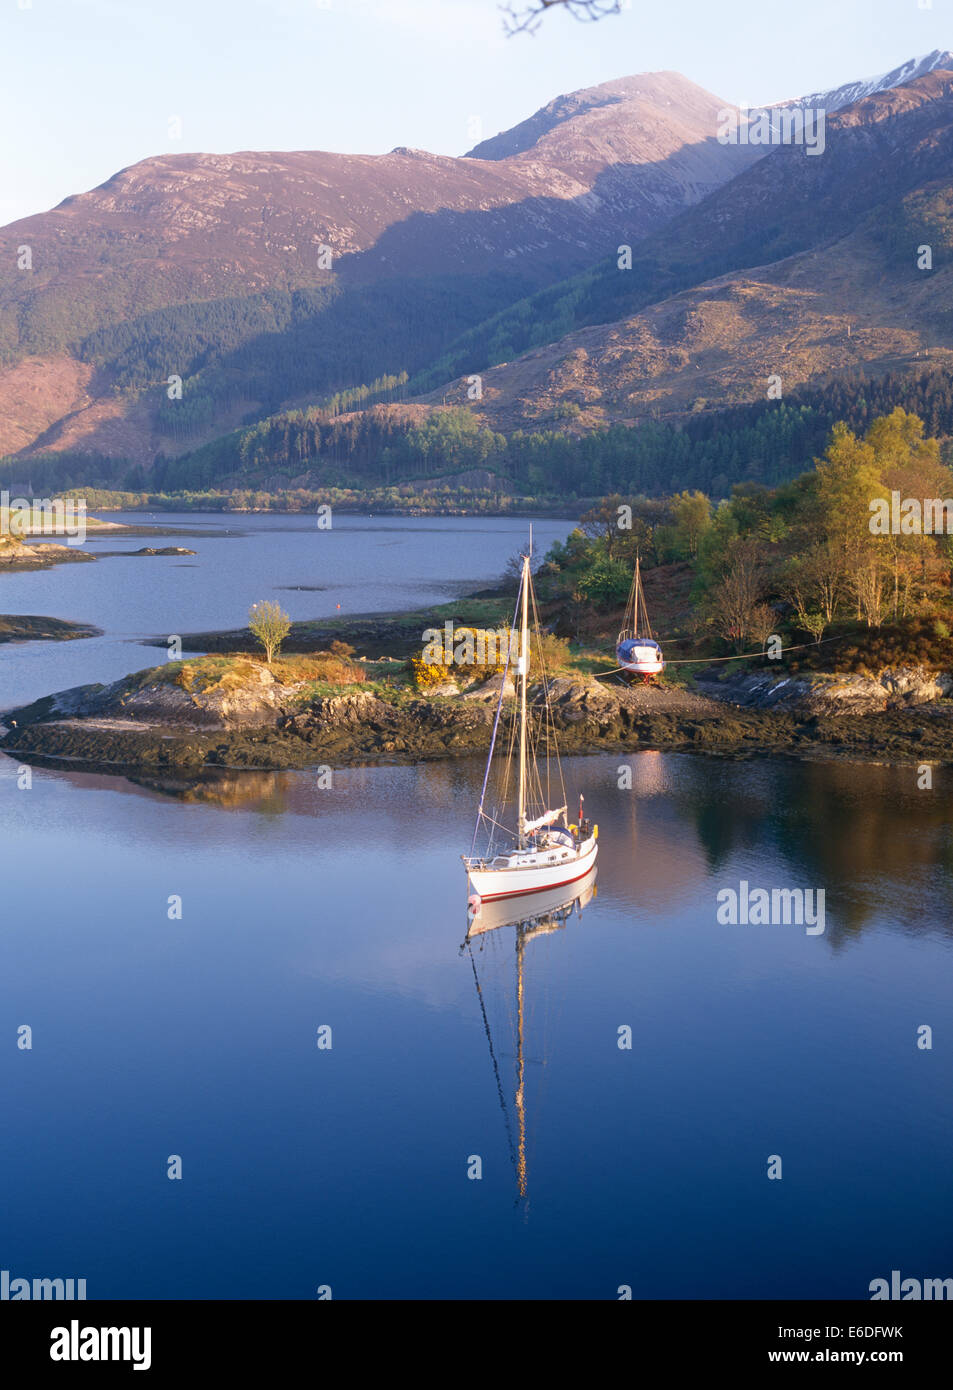 loch leven ballachulish highlands highland scotland uk - Stock Image